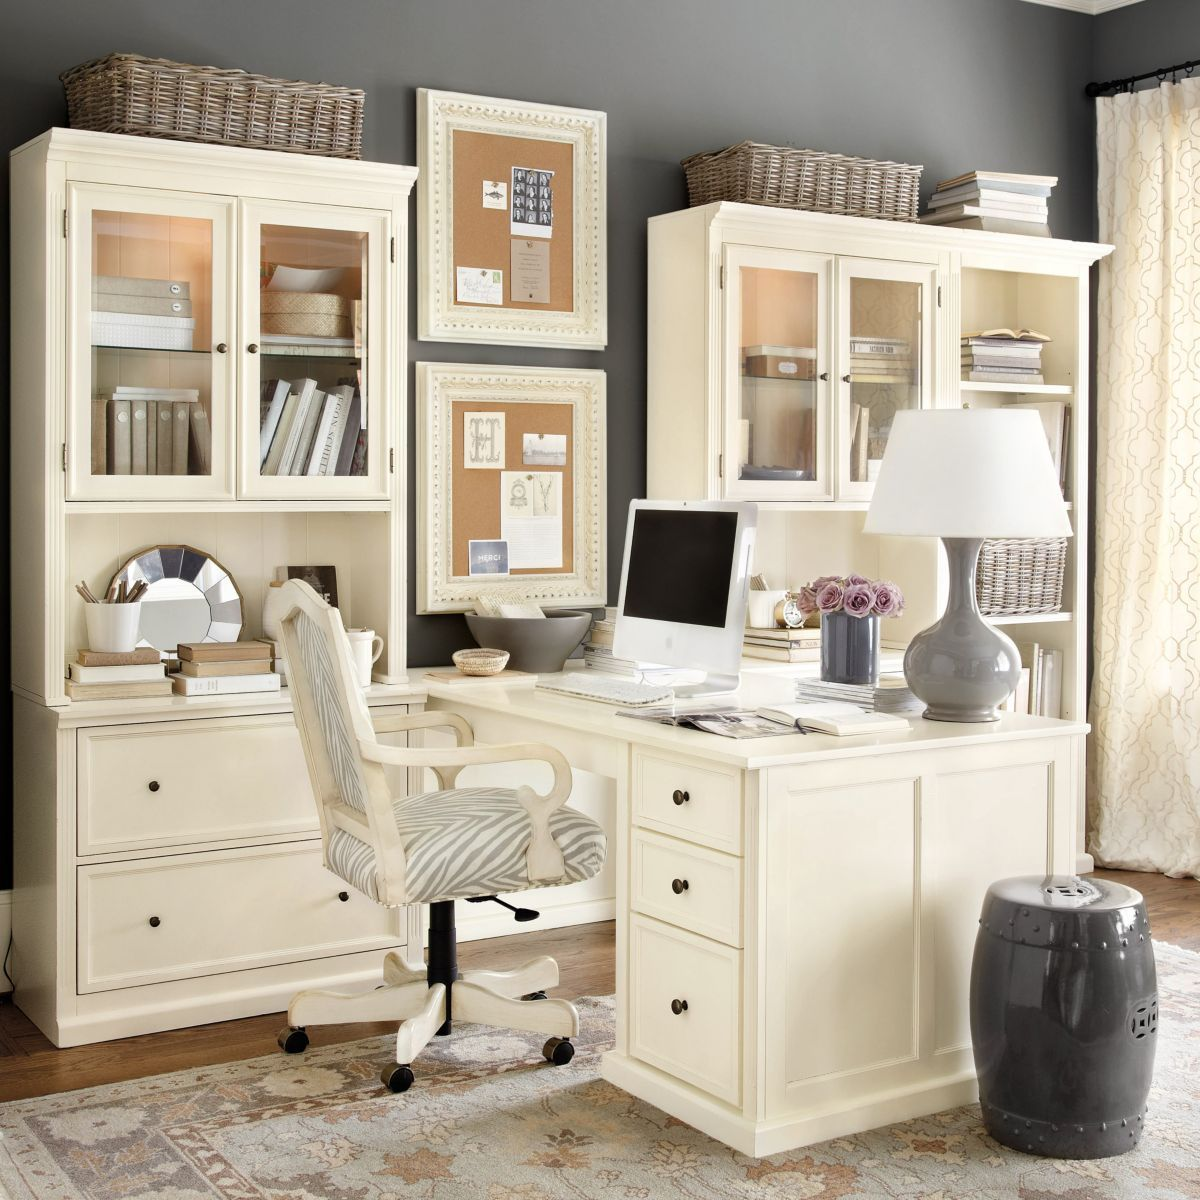 His and Hers Home Office Desks